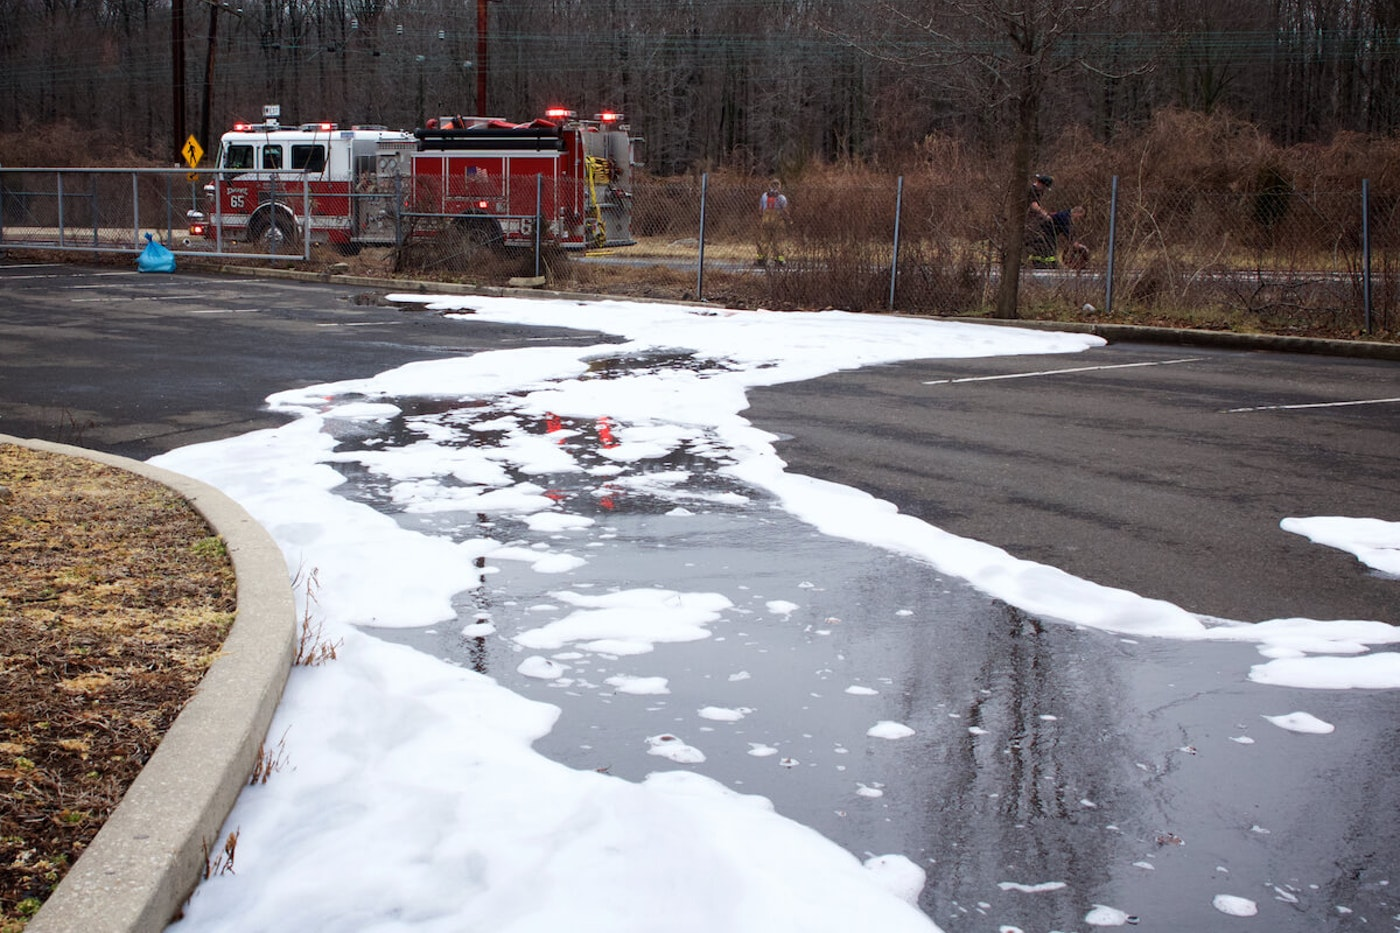 Bensalem, Pennsylvania / USA - February 7, 2019: Firefighting foam remains on the ground surface following a tanker truck accident.